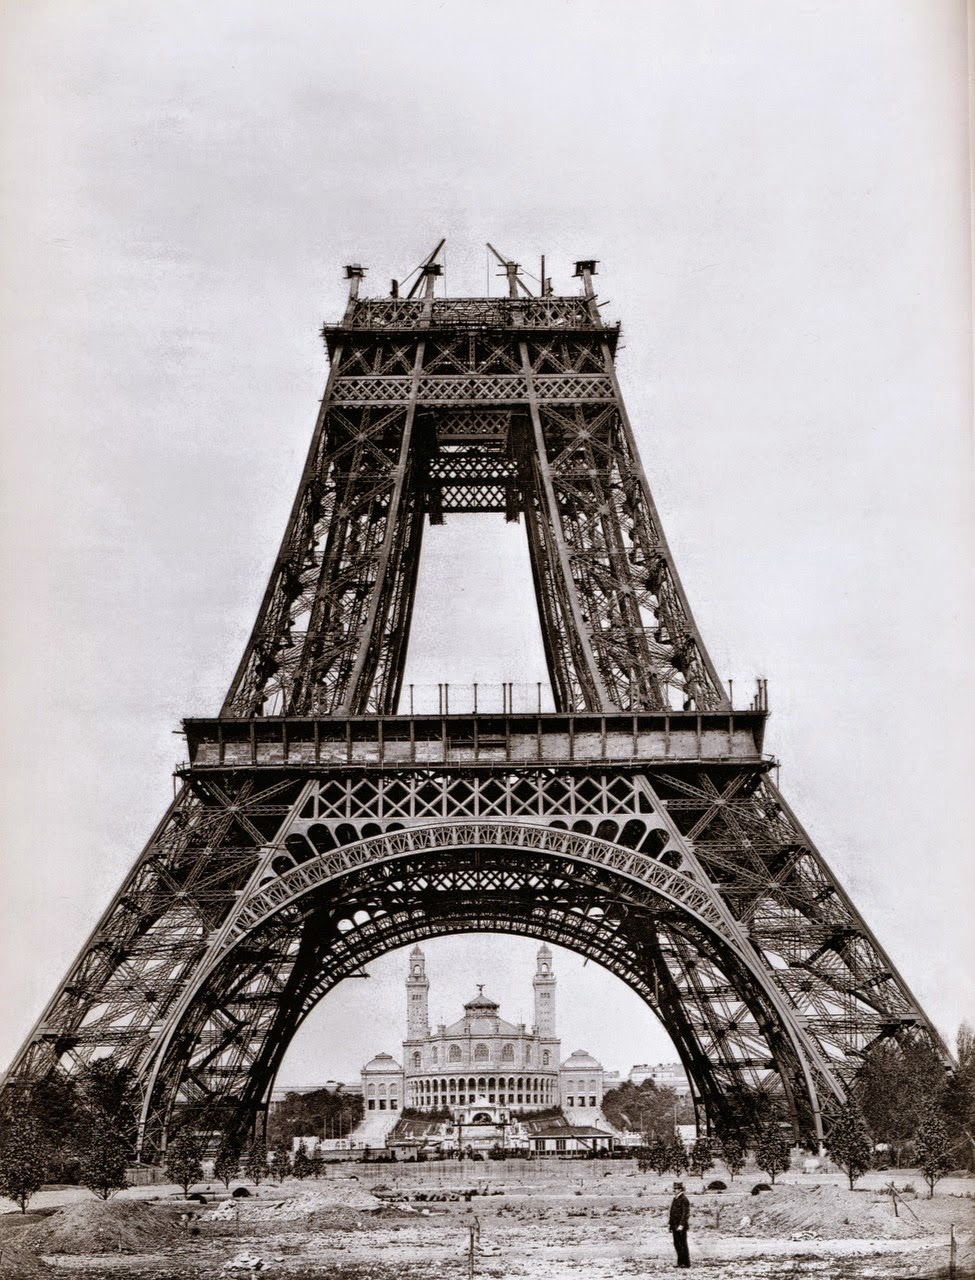 Eiffel Tower during construction in 1888, Paris